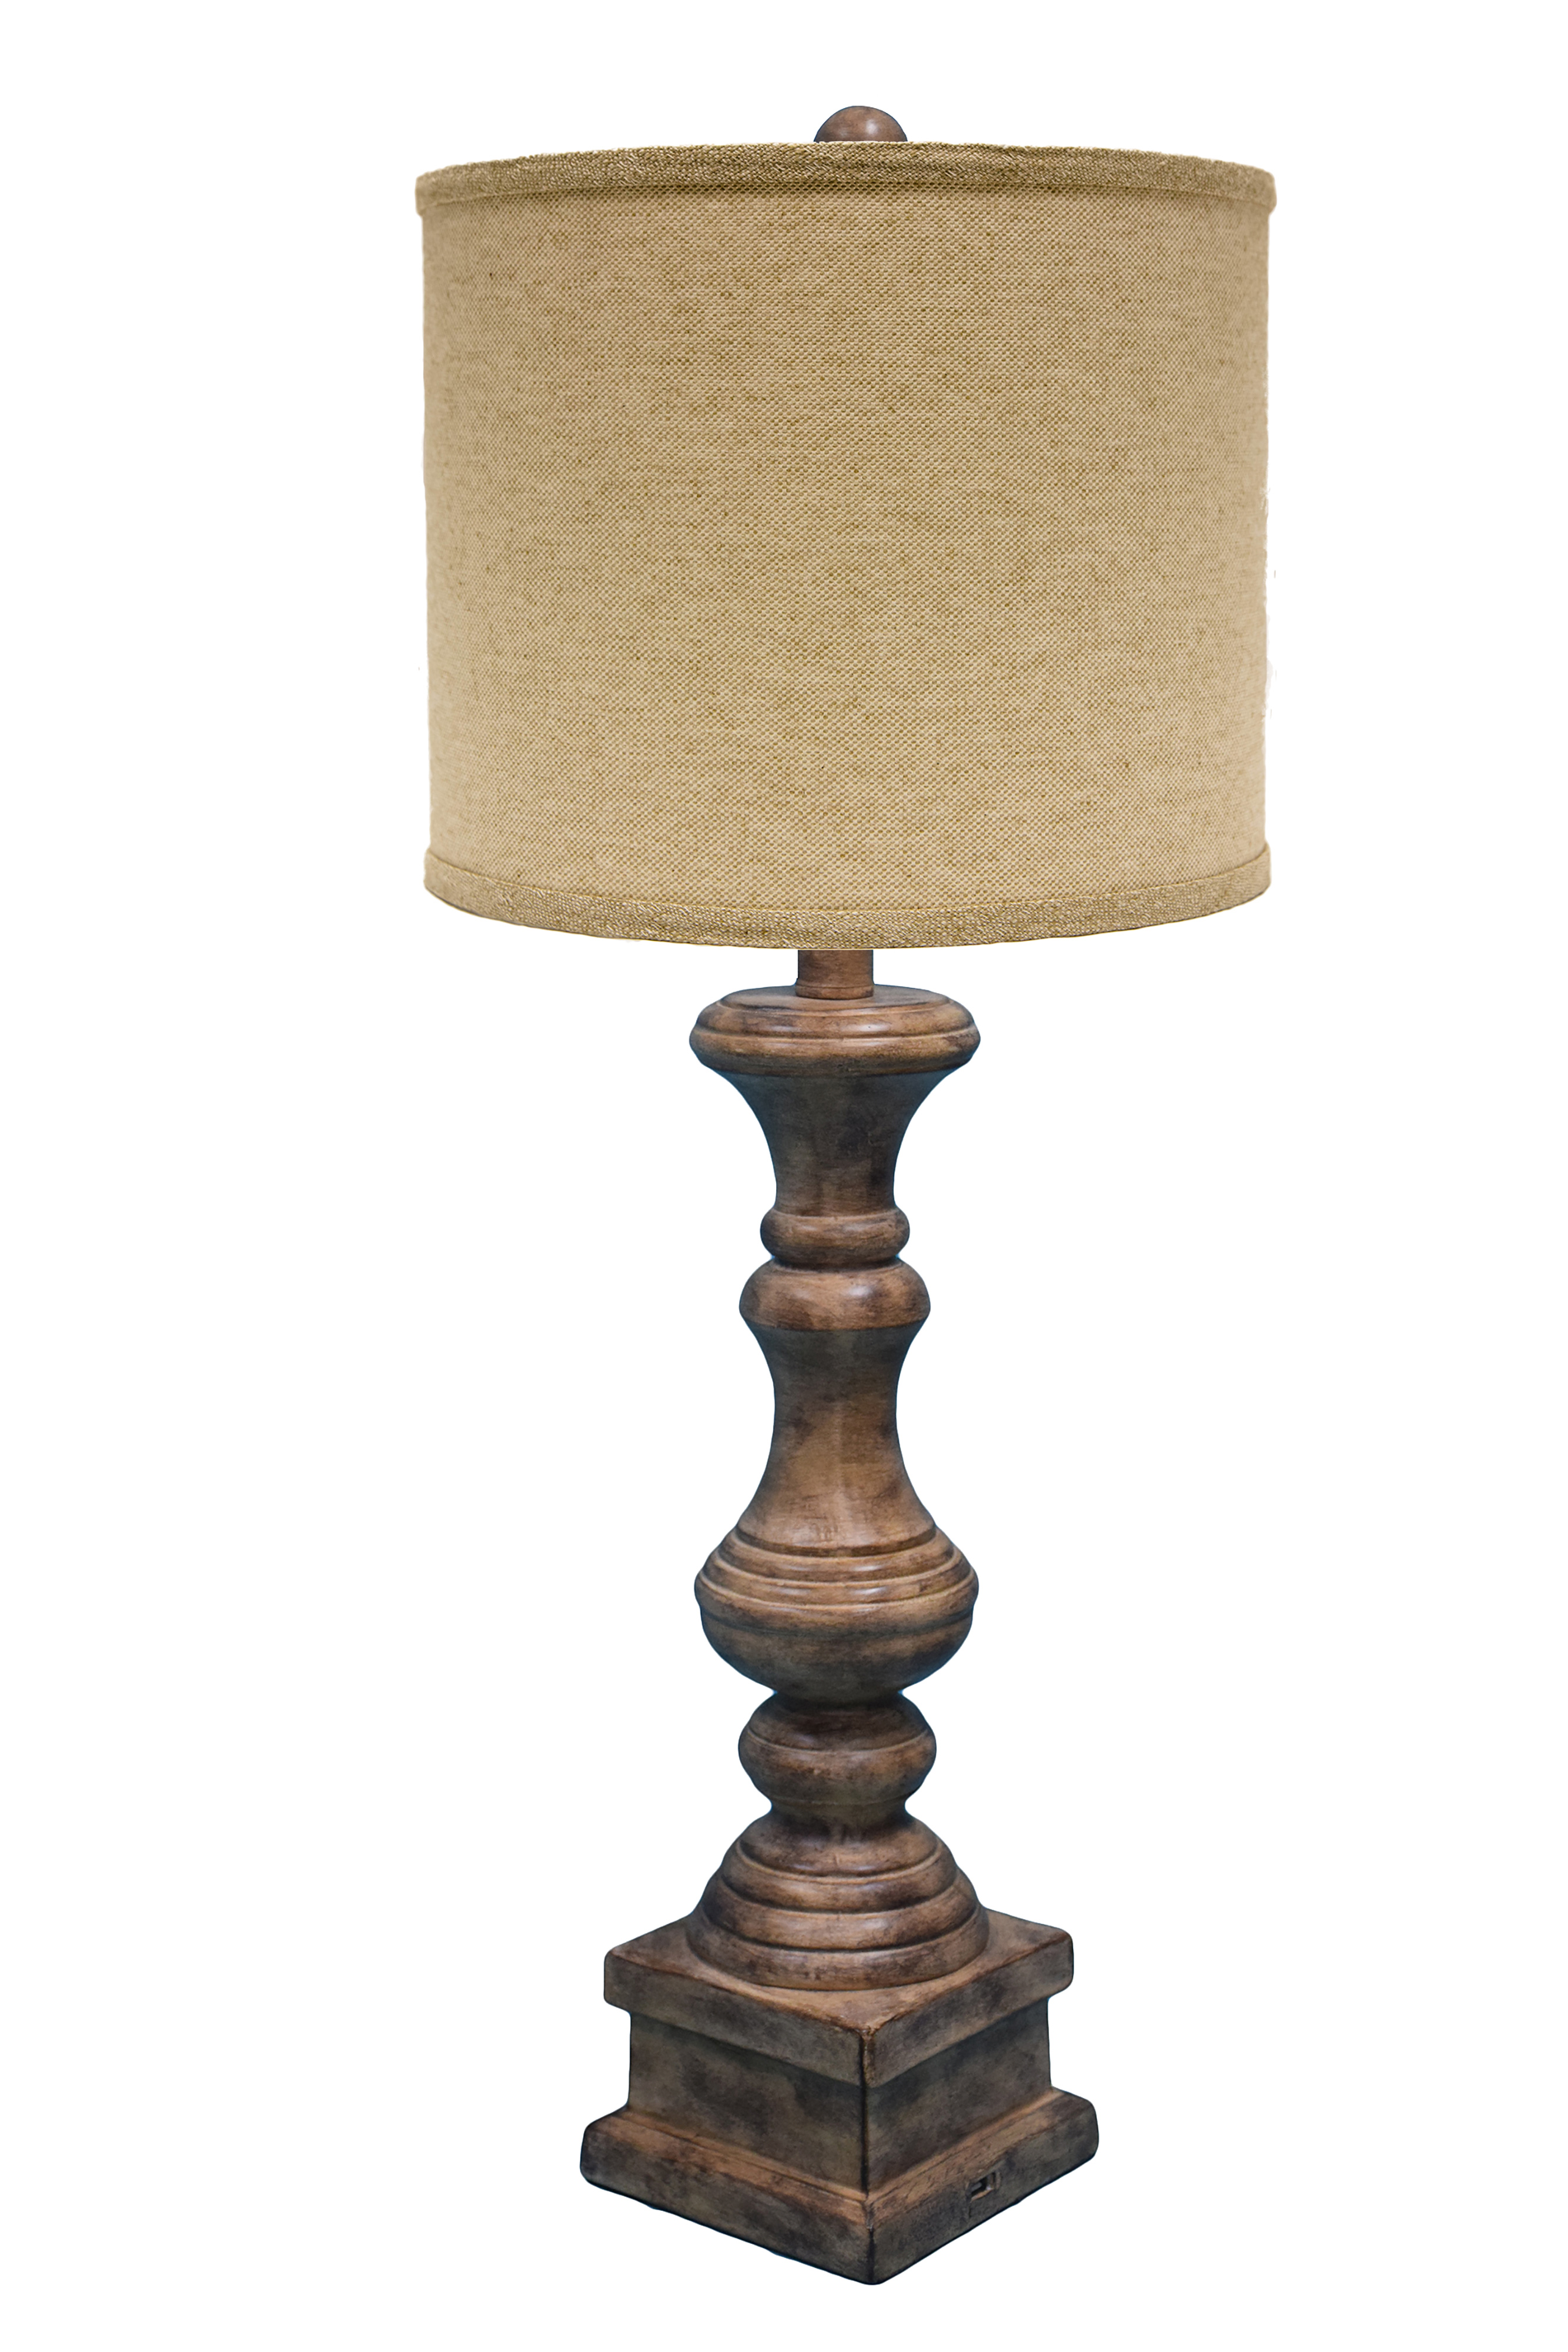 Floor Table Lamps Austin 29 Table Lamp Brown Jefferson Linen Shade L2705bn U1 Wholesale Lamps Shades Bulbs Ahs Lighting Wholesaler Value Priced Accent Floor